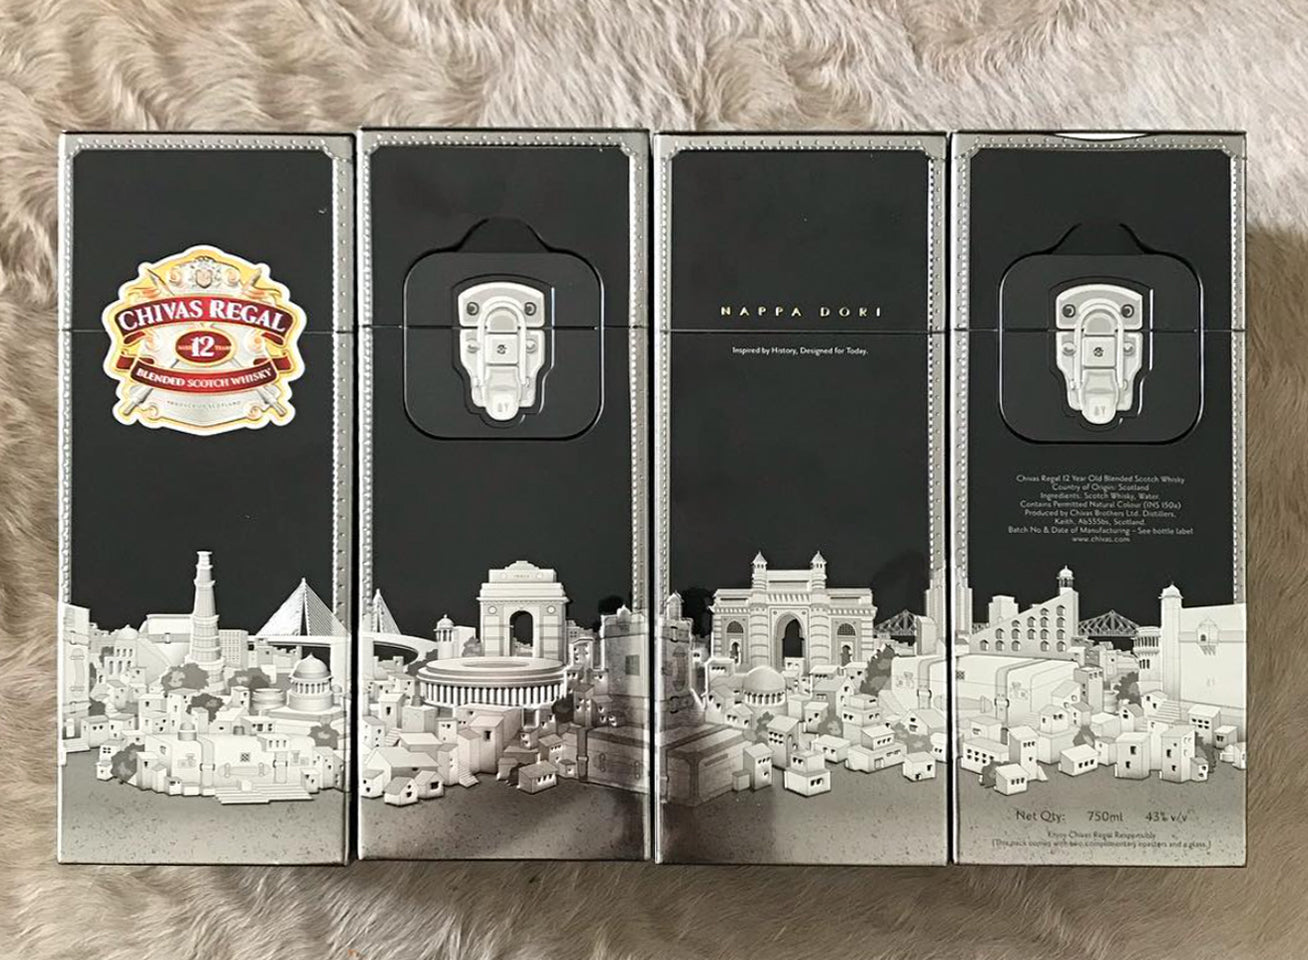 Chivas Regal Package From All Sides